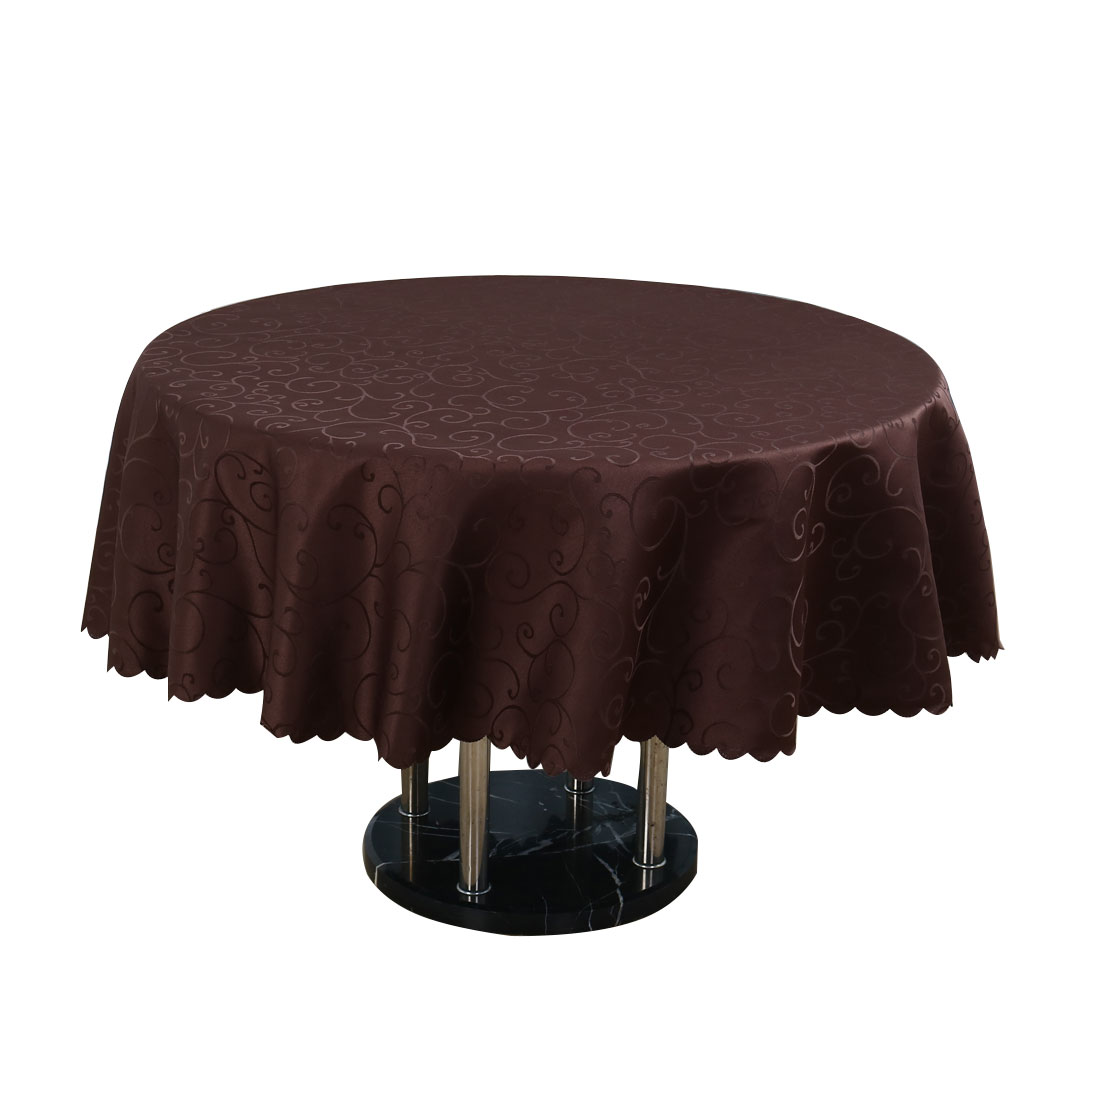 "Hotel Restaurant Polyester Round Flower Pattern Tablecloth Table Cloth Cover Coffee Color 1.8M 71"" Diameter"